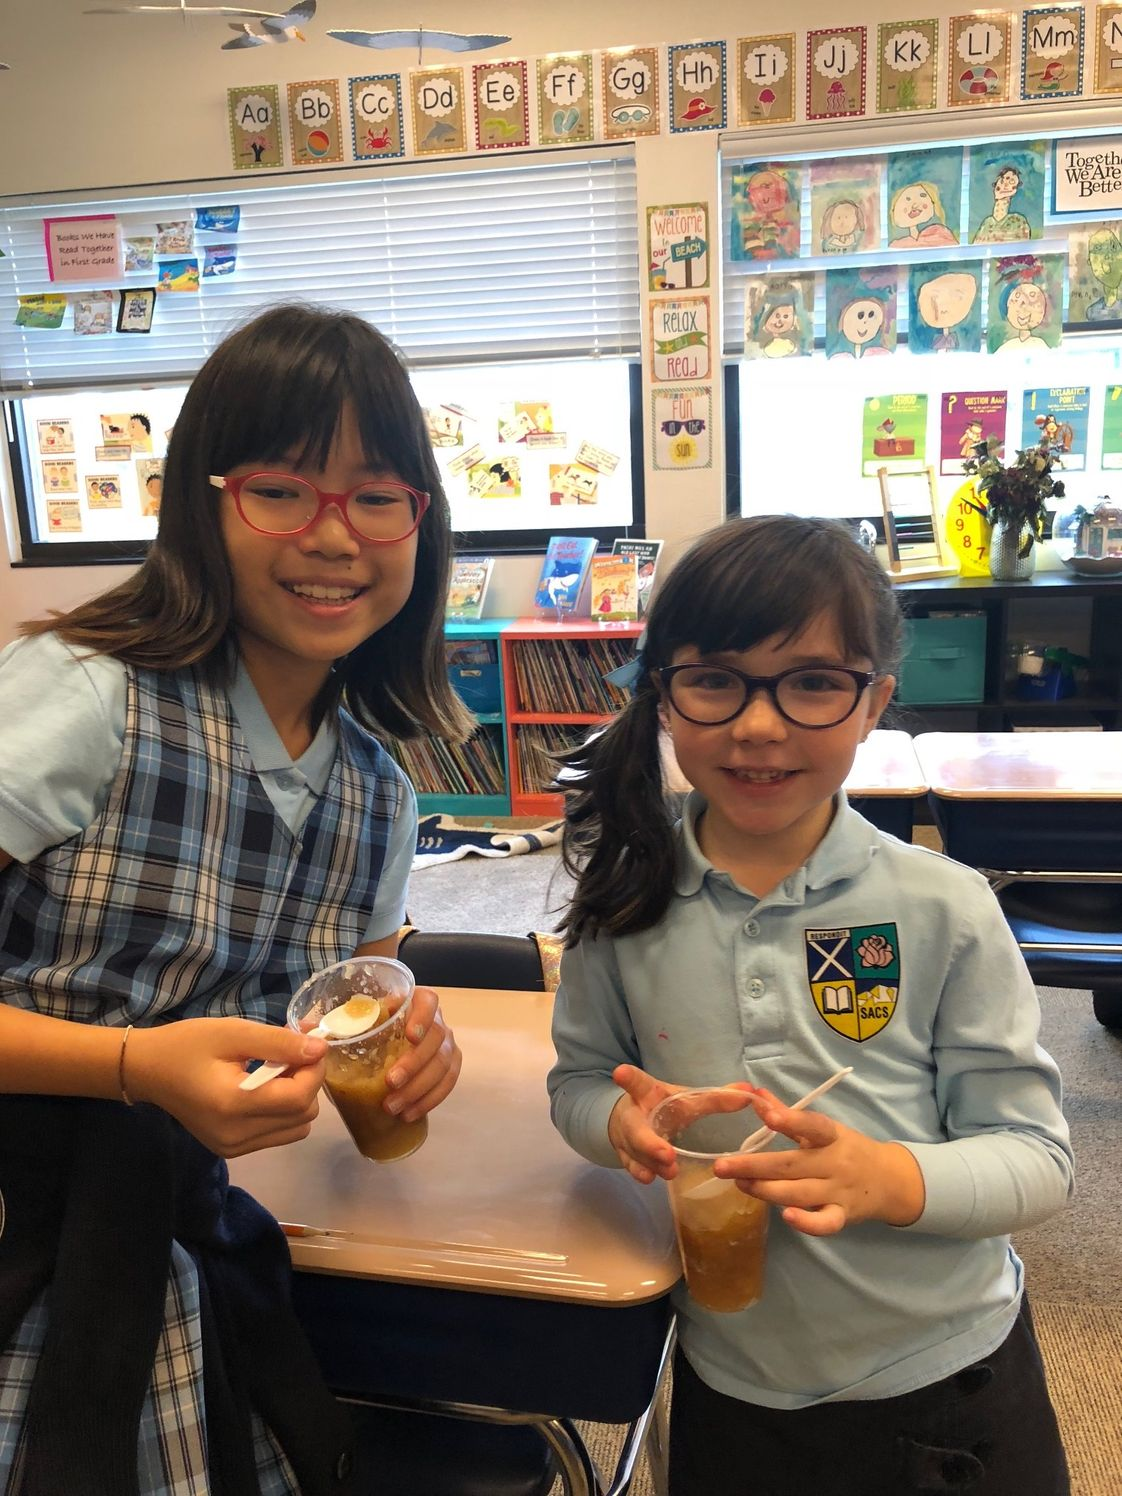 St. Andrew Catholic School Photo - 1st and 4th graders celebrate Johnny Appleseed day by making applesauce!